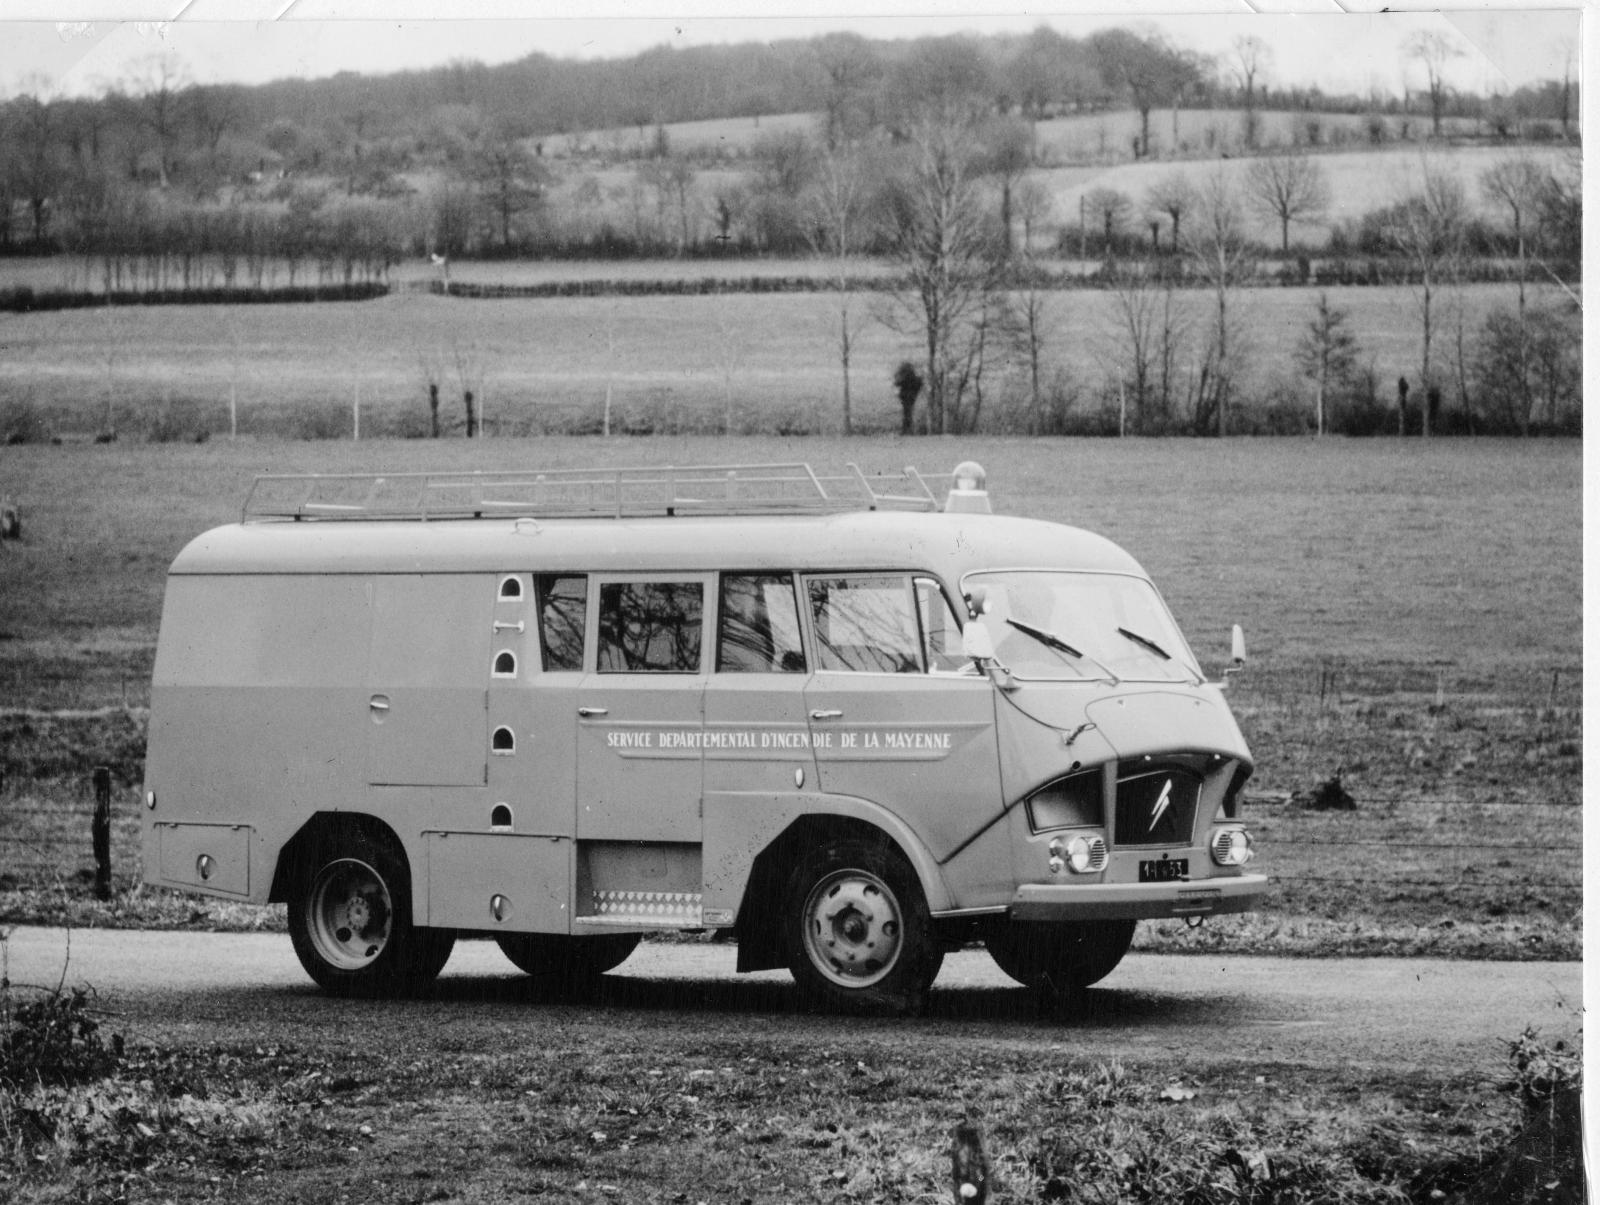 Camion tipo 350